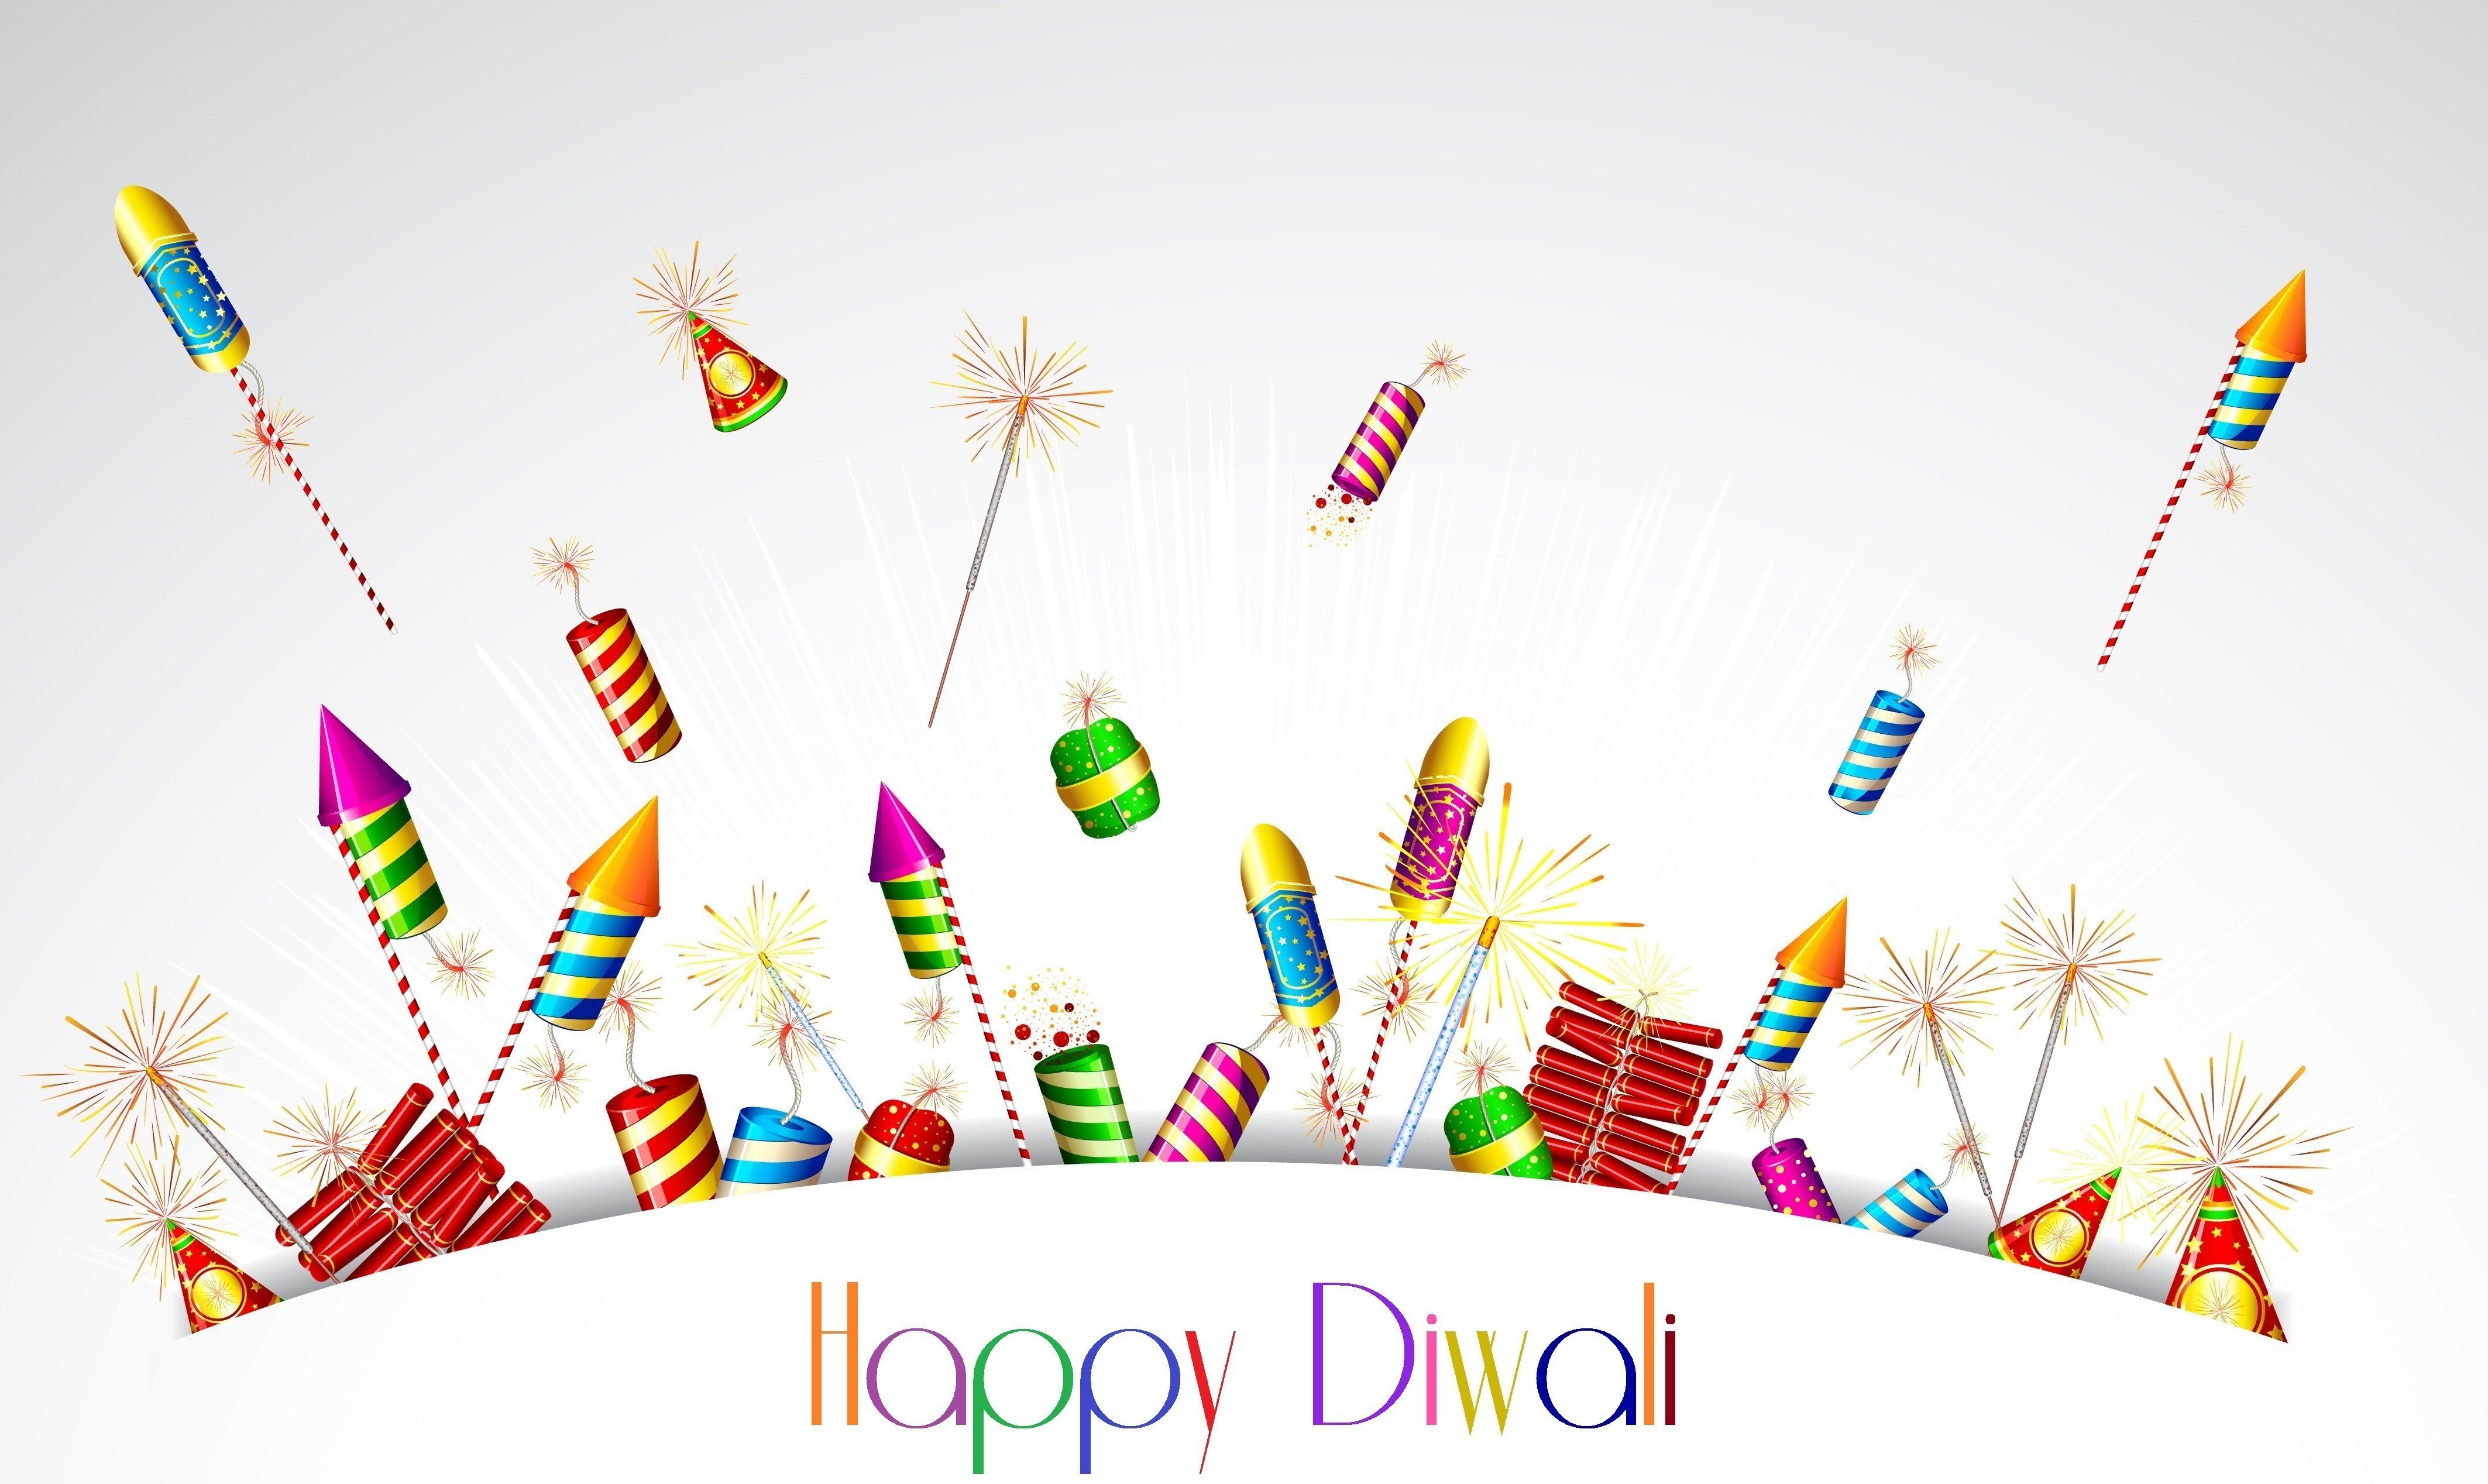 Happy Diwali Fireworks Images HD